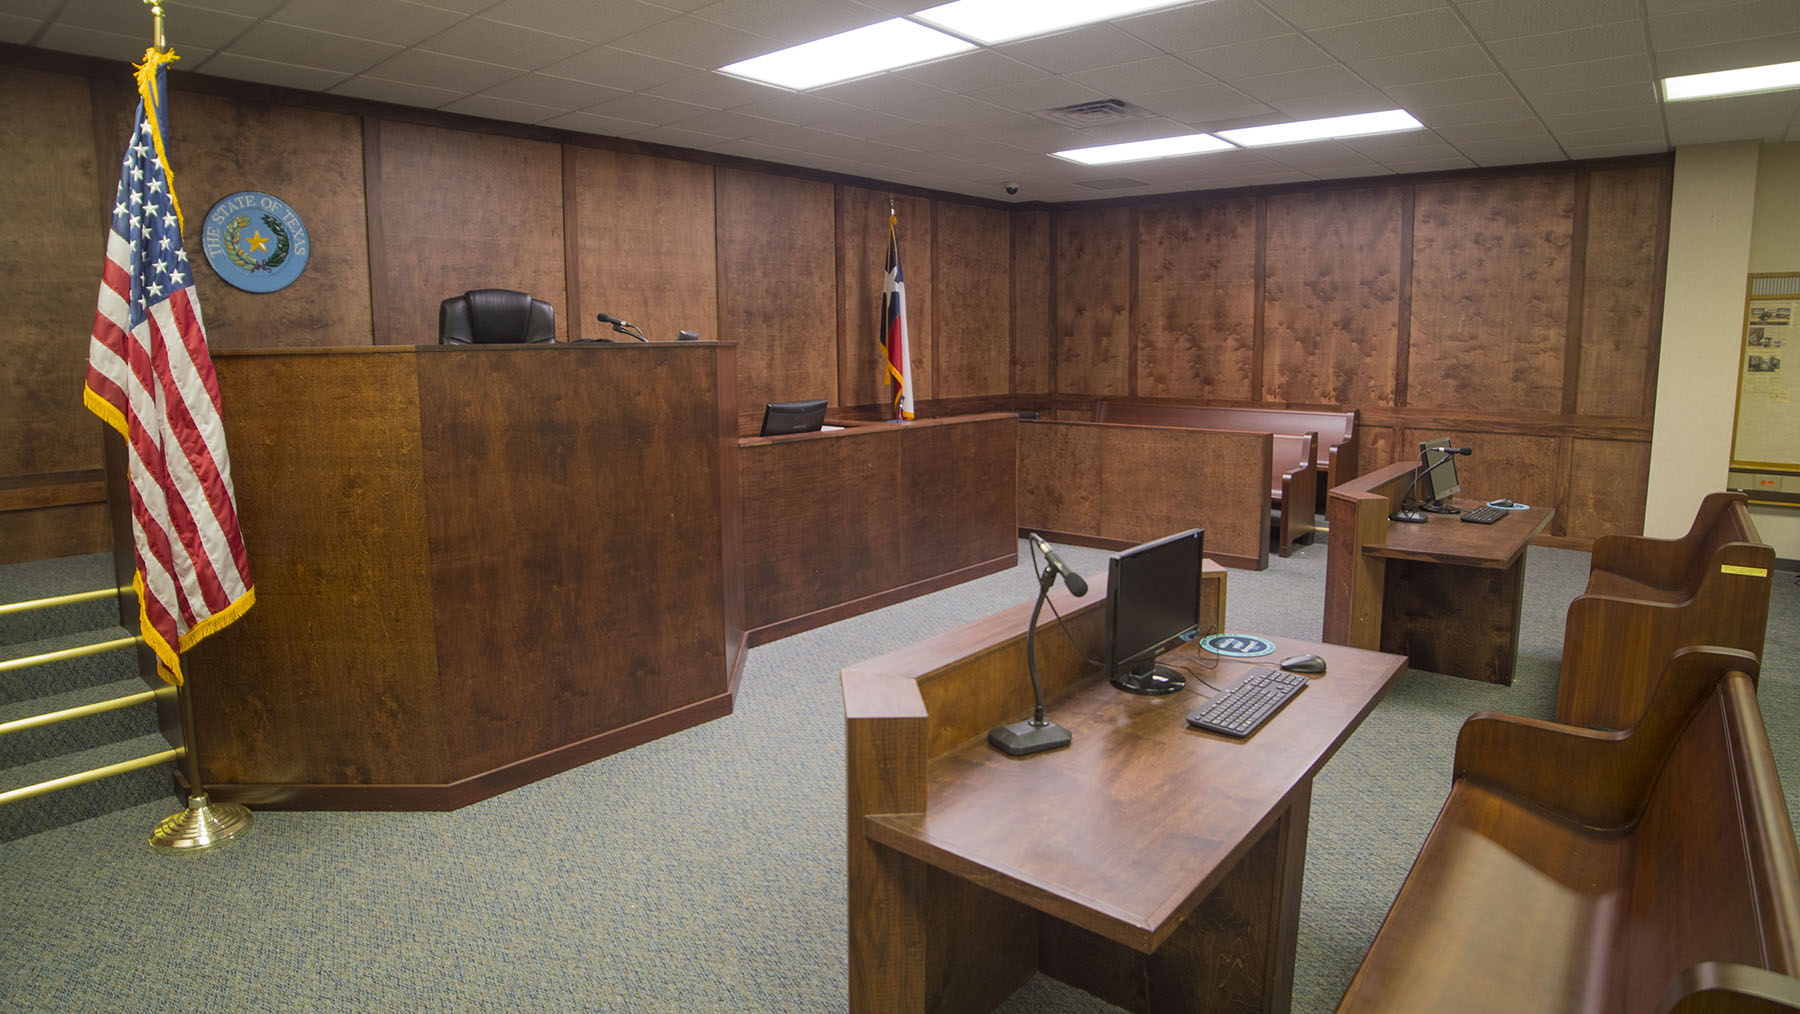 Students inside the courtroom like classroom reenacting a court case